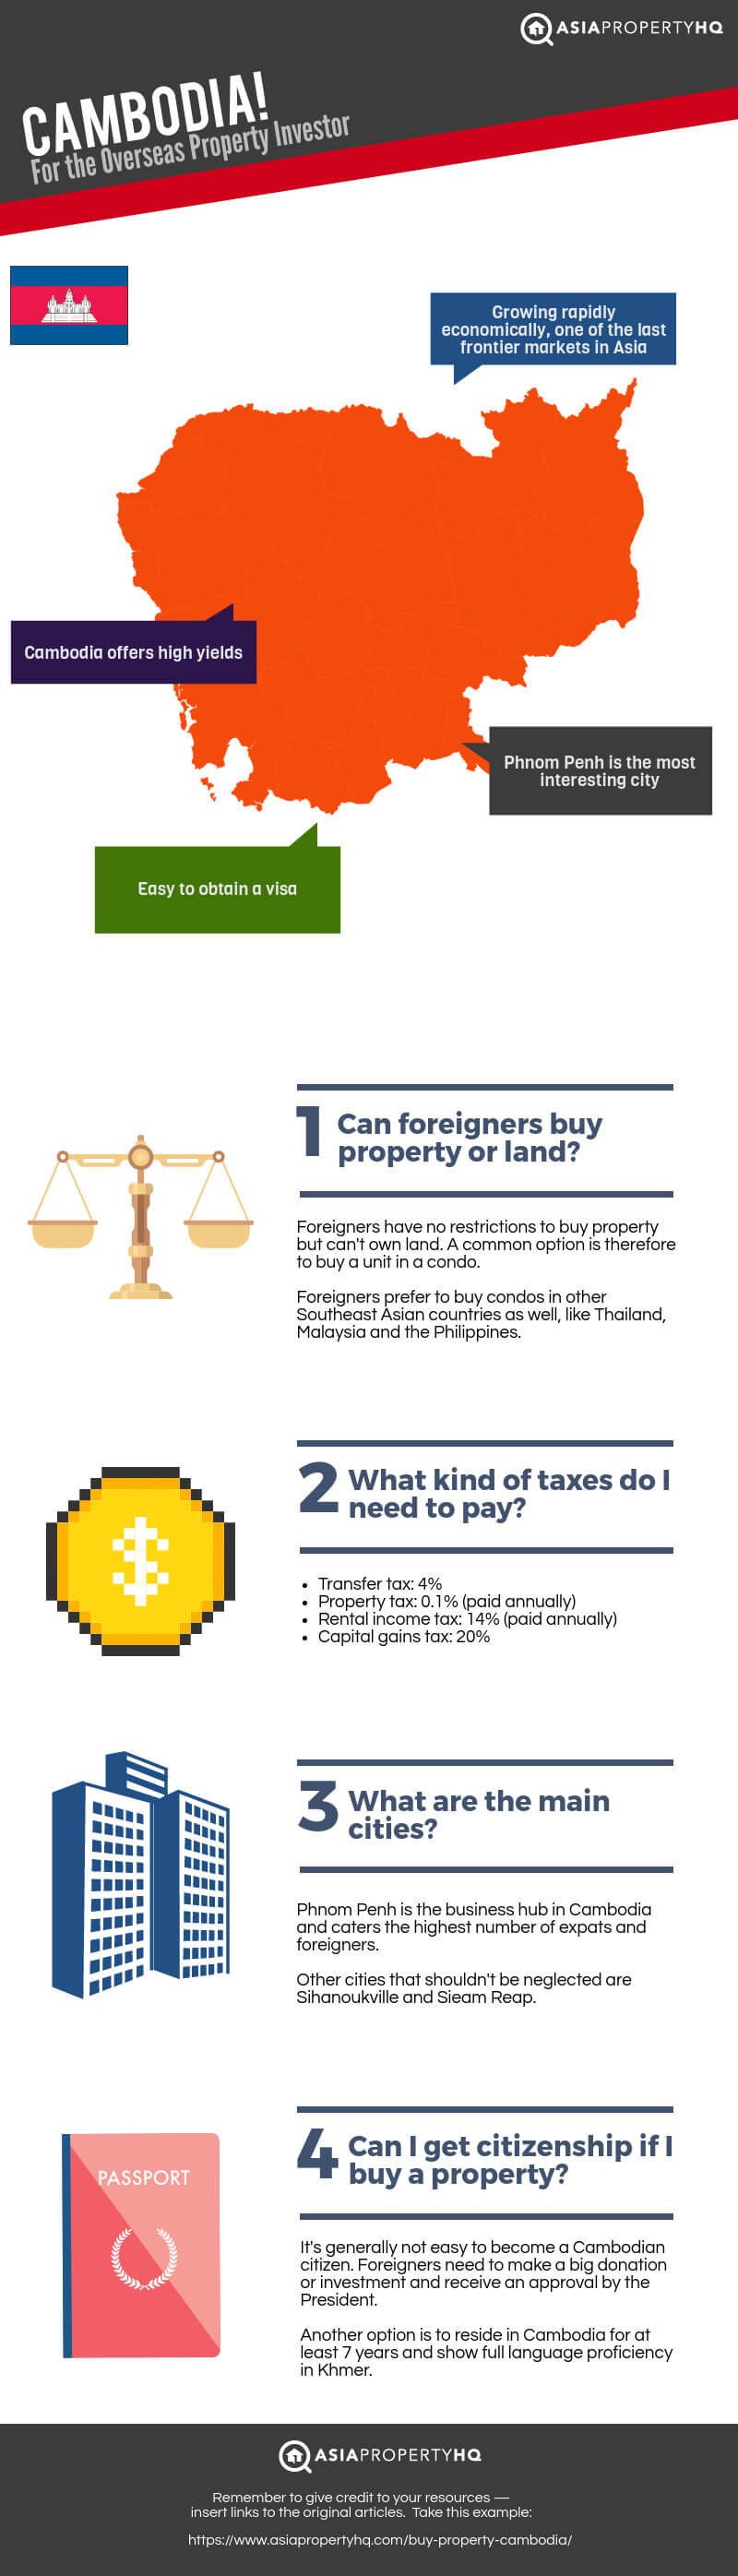 Buy Property in Cambodia Infographic